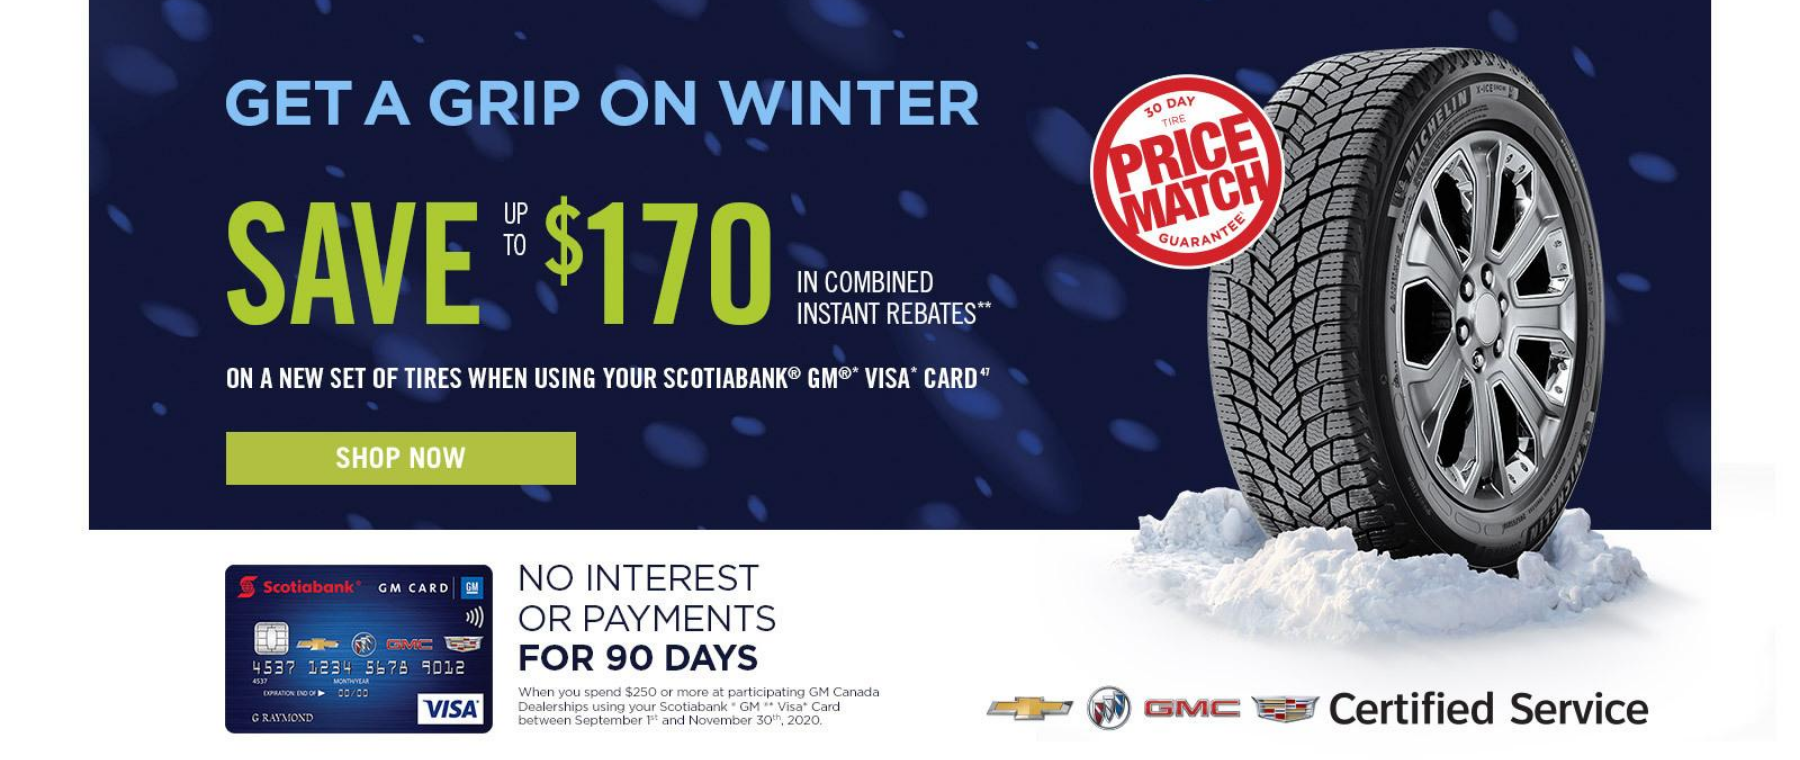 Get a Grip on Winter - $170 Instant Rebates